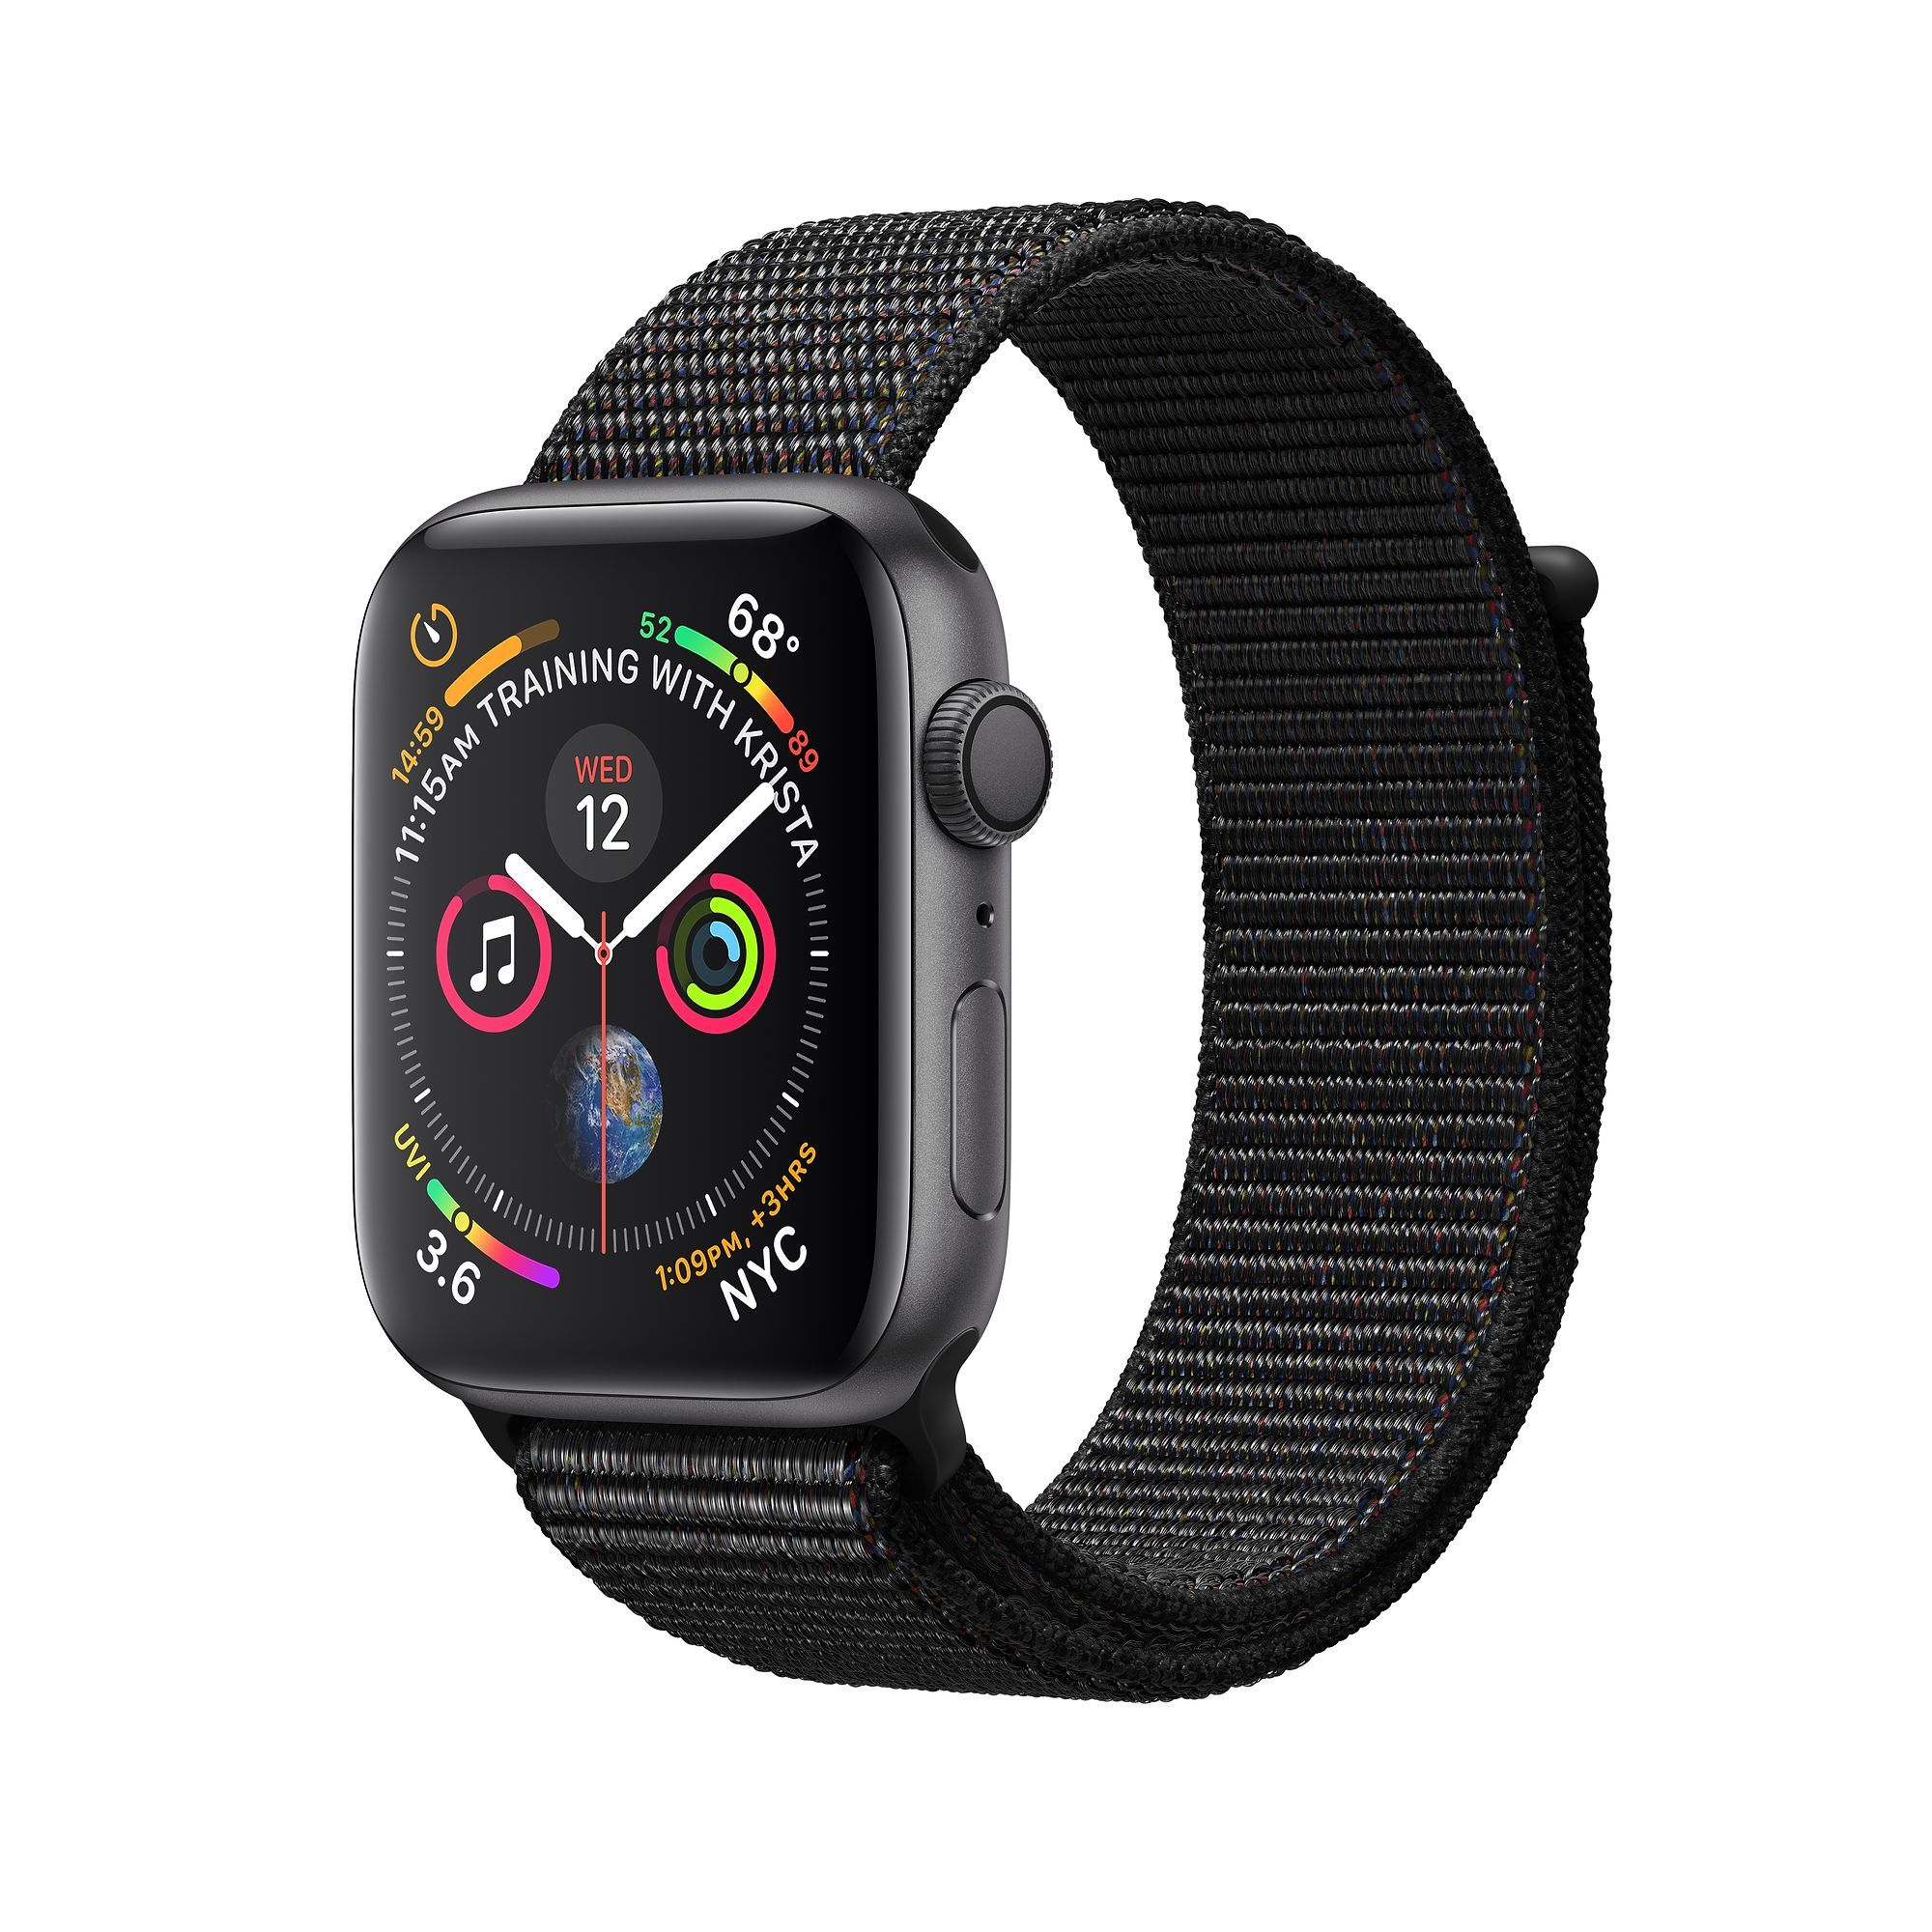 Buy Apple Watch Series 5 With Images Apple Watch Buy Apple Watch Apple Watch Bands